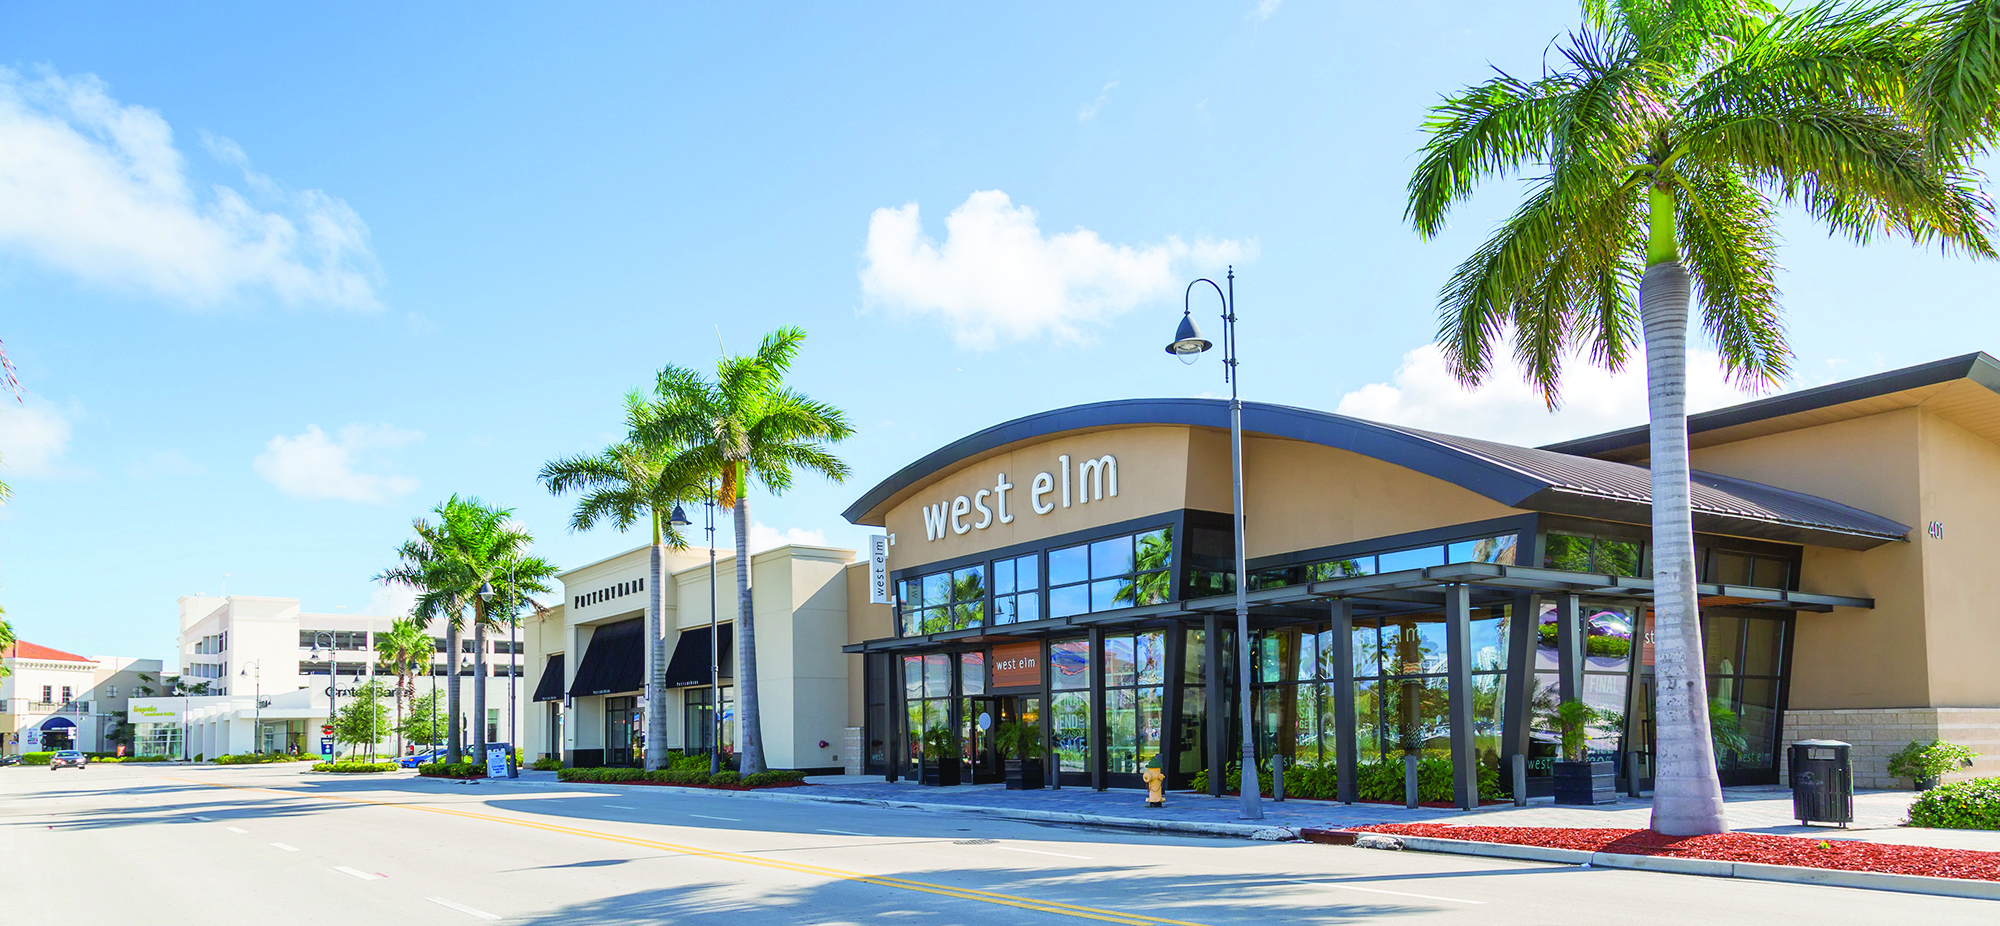 TheVillageGulfstream West Elm Building